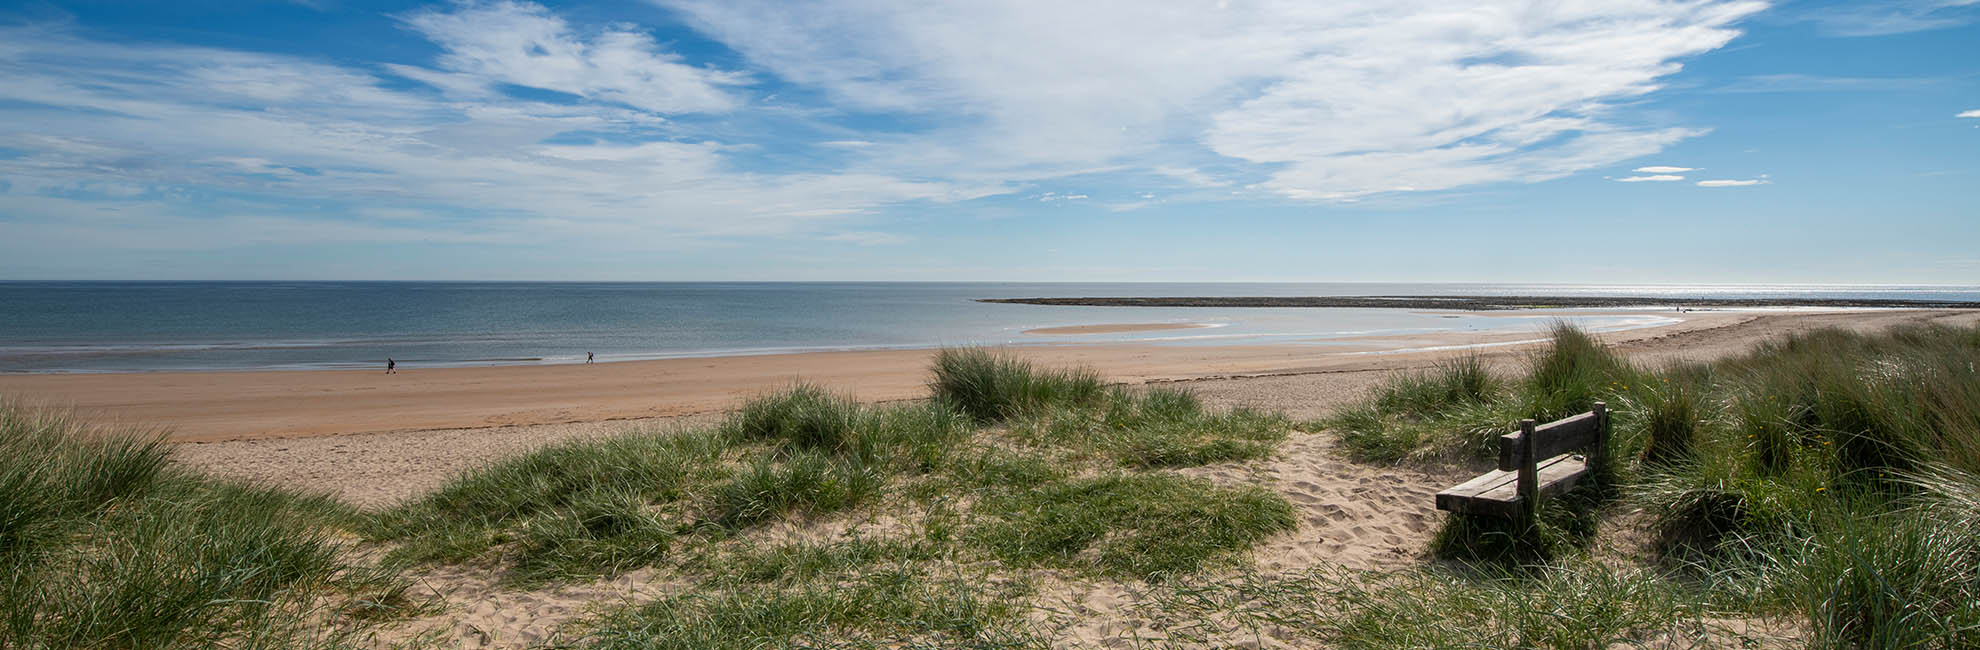 A child running through the sand dunes at the beach near Cresswell Towers